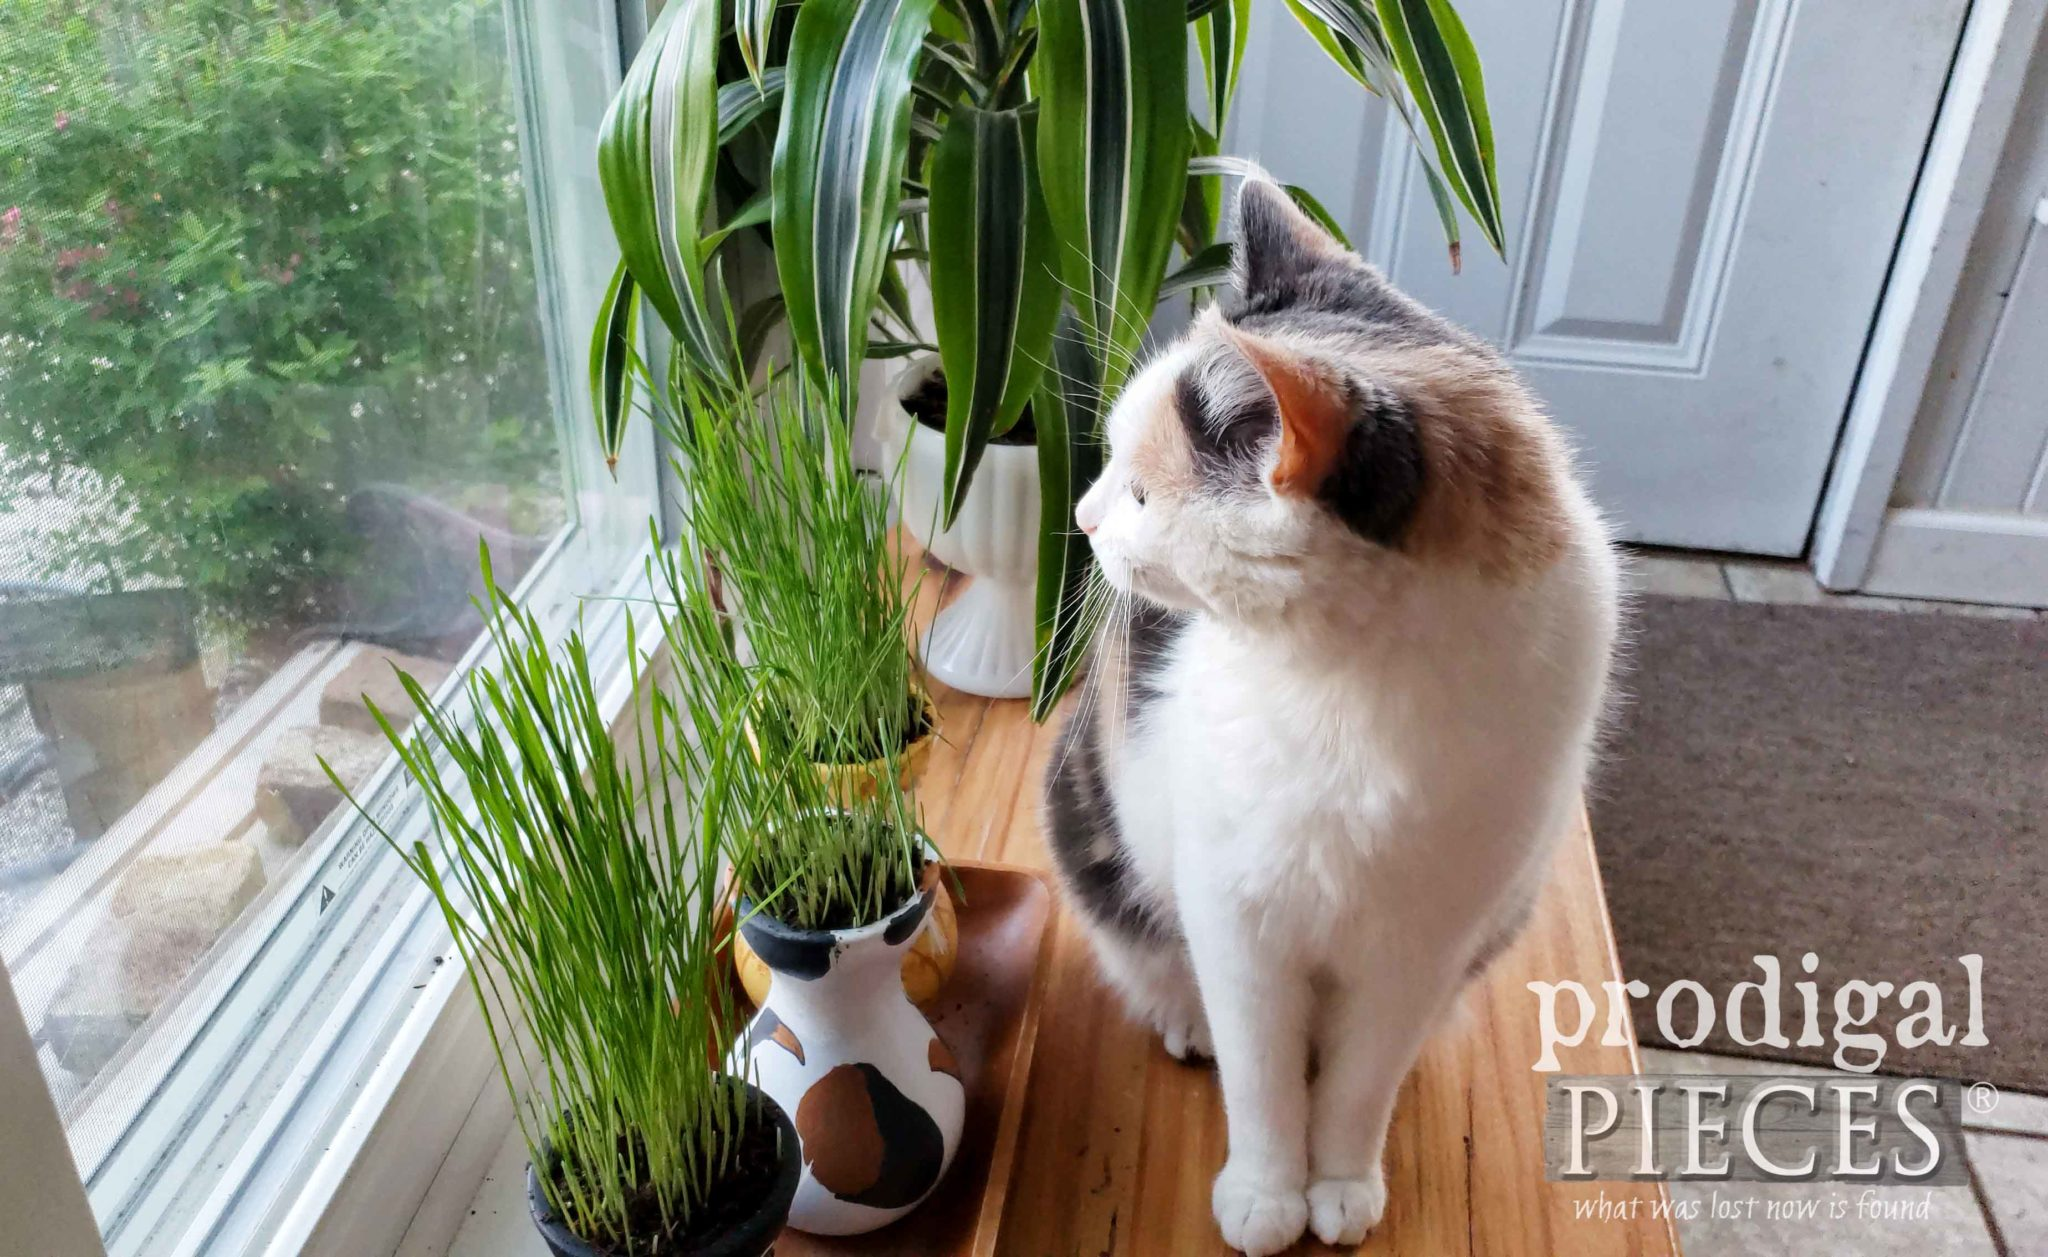 Indoor Cat Grass Tutorial with Video DIY by Larissa of Prodigal Pieces | prodigalpieces.com #prodigalpieces #diy #home #pets #cats #food #homedecor